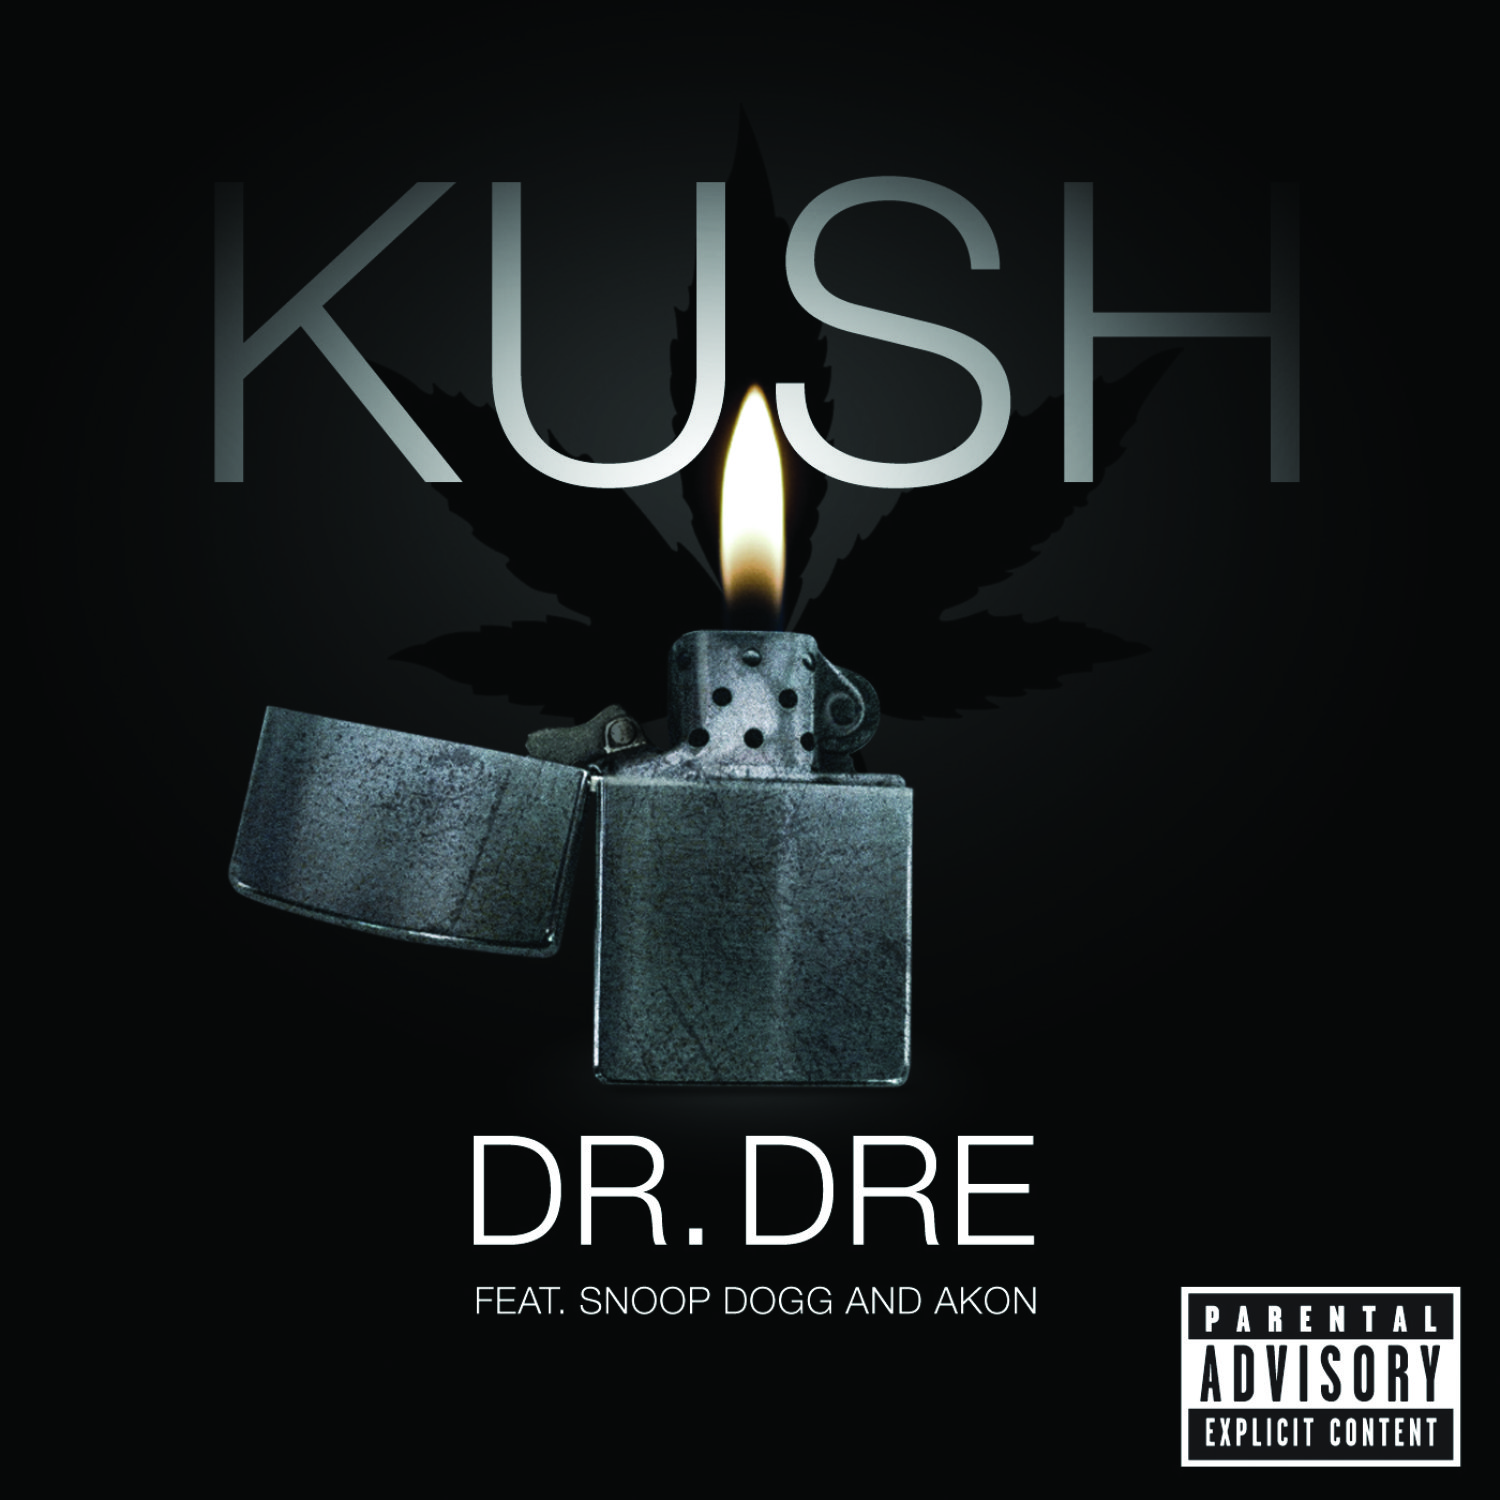 dr dre kush artwork big